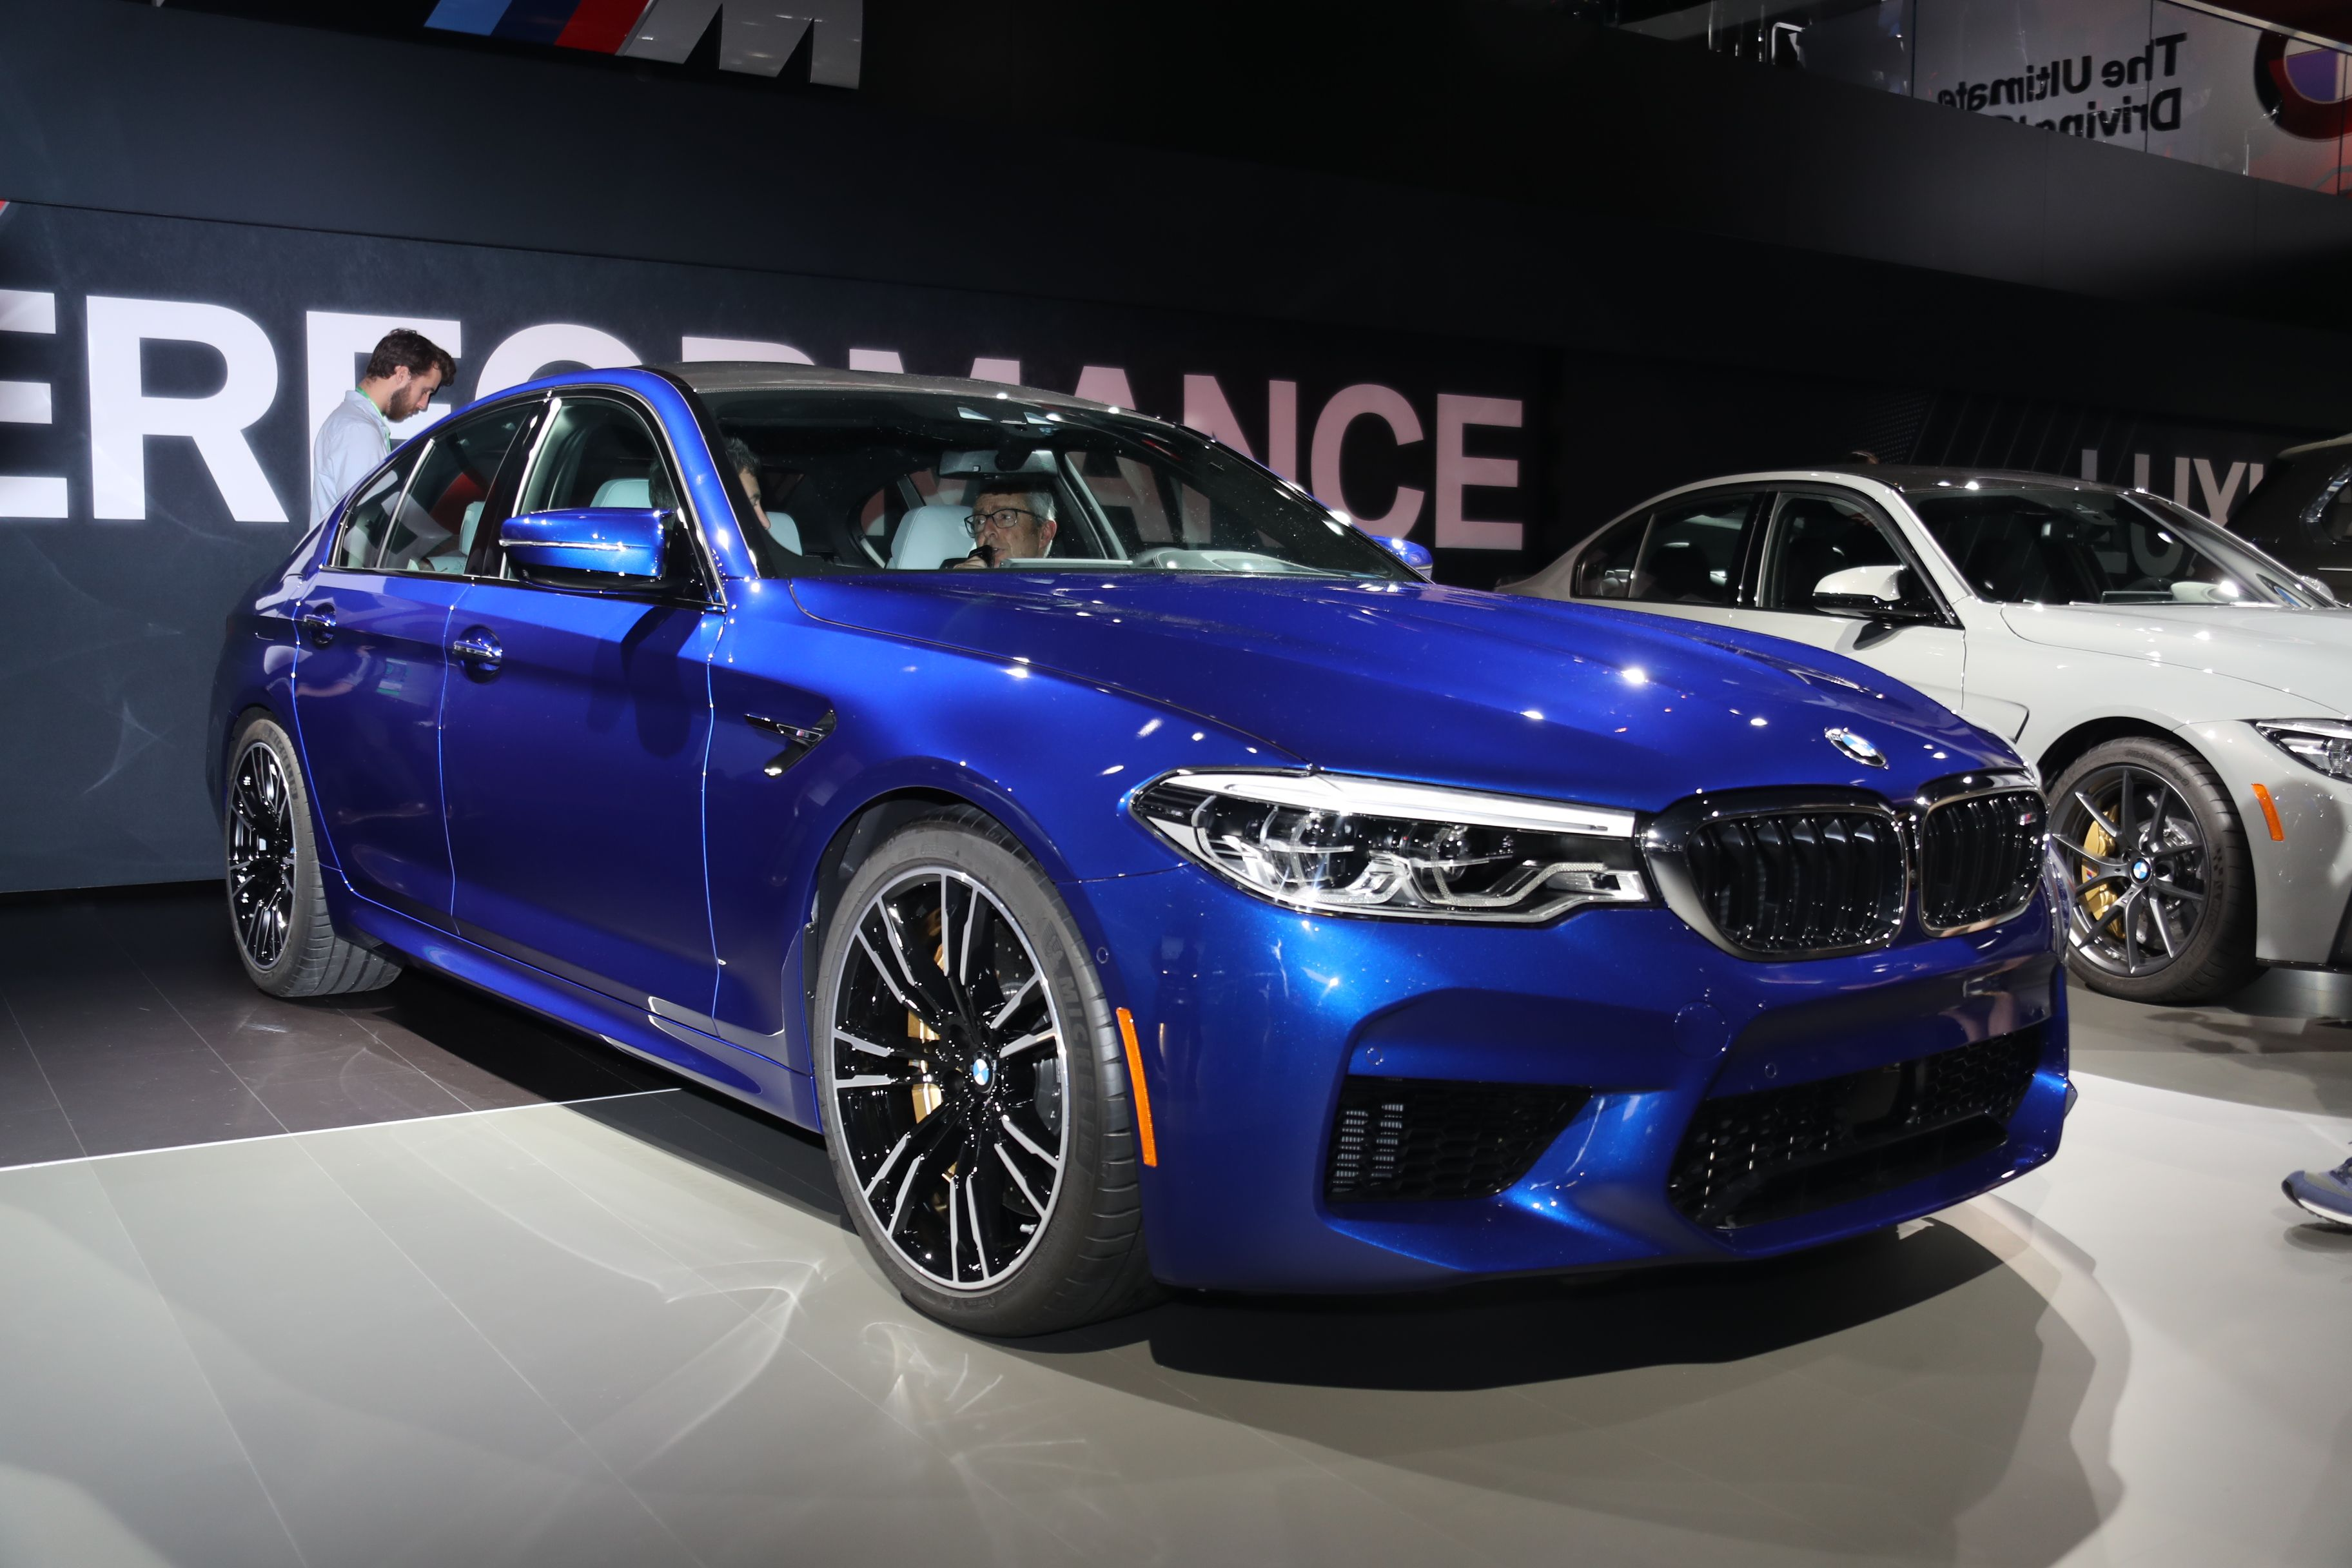 2018 Bmw M5 600 Hp And All Wheel Drive For 102 600